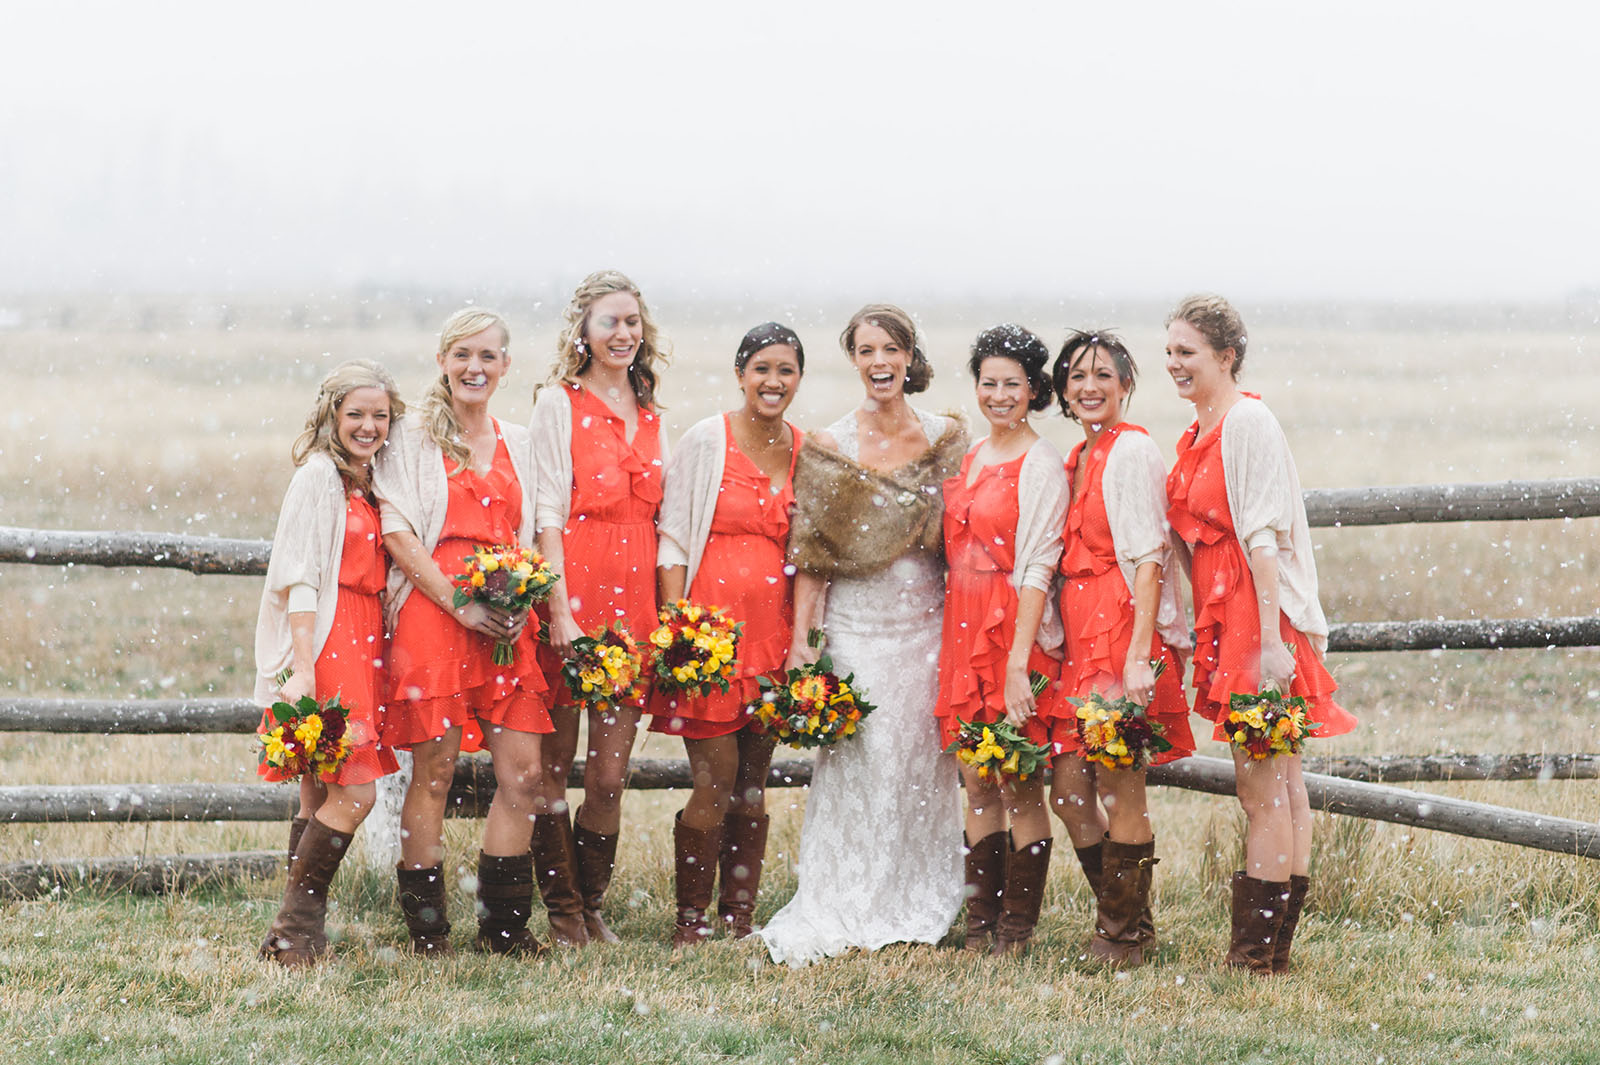 colorado bride and bridesmaids wedding photo